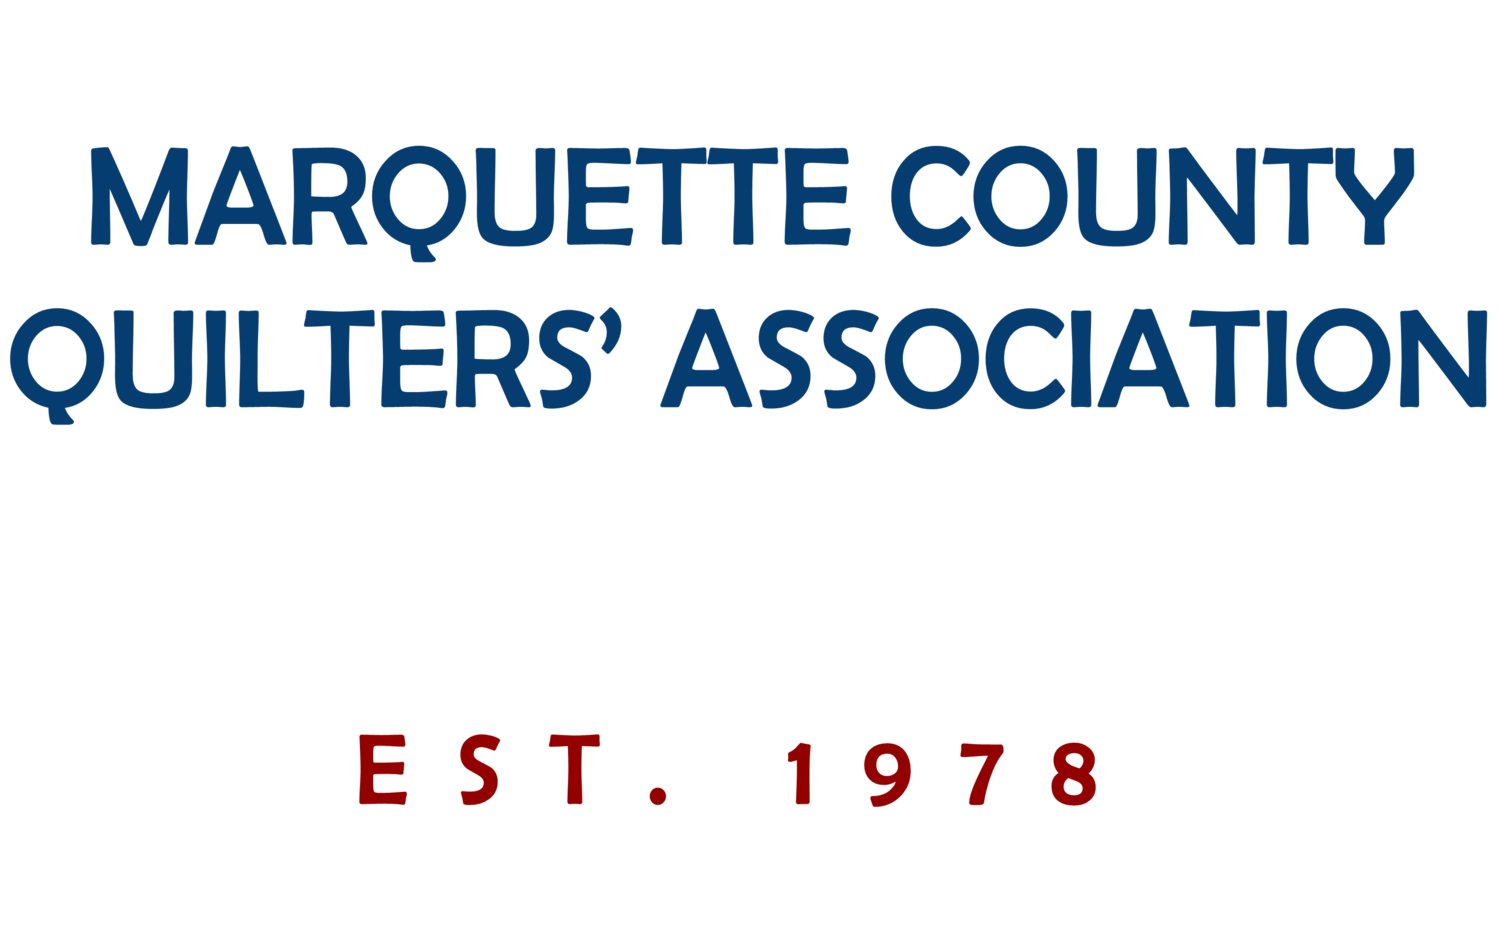 Marquette County Quilters' Association